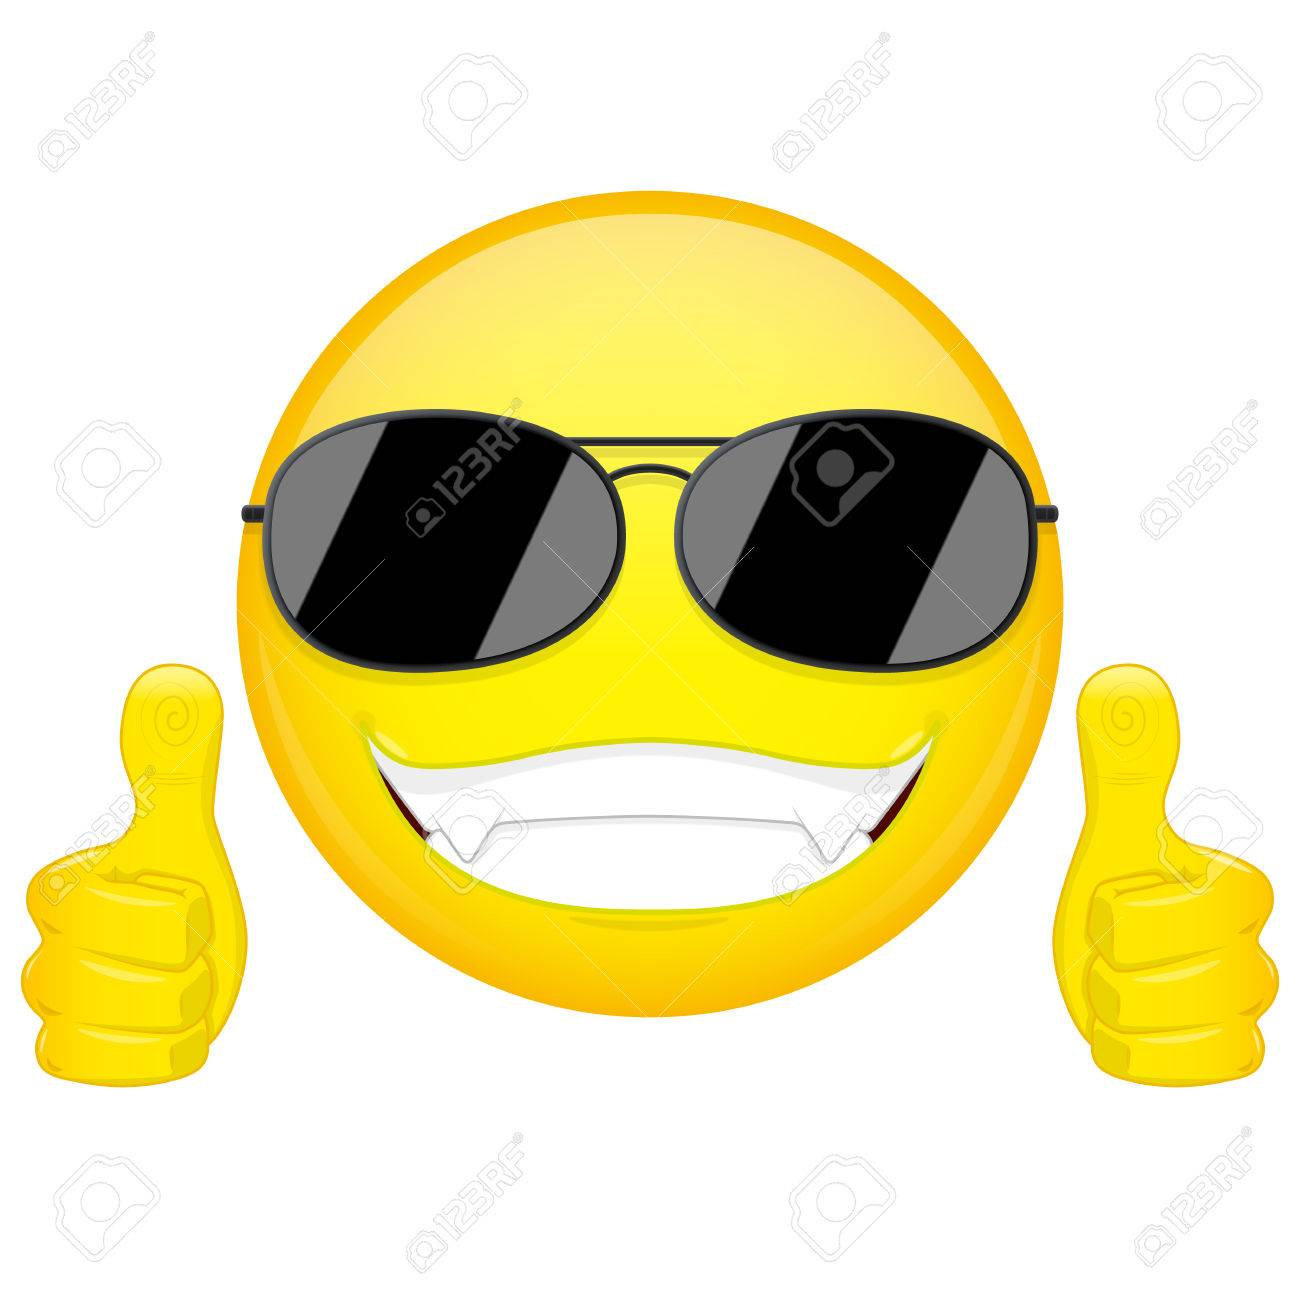 good idea emoji thumbs up emotion cool guy with sunglasses emoticon vector illustration